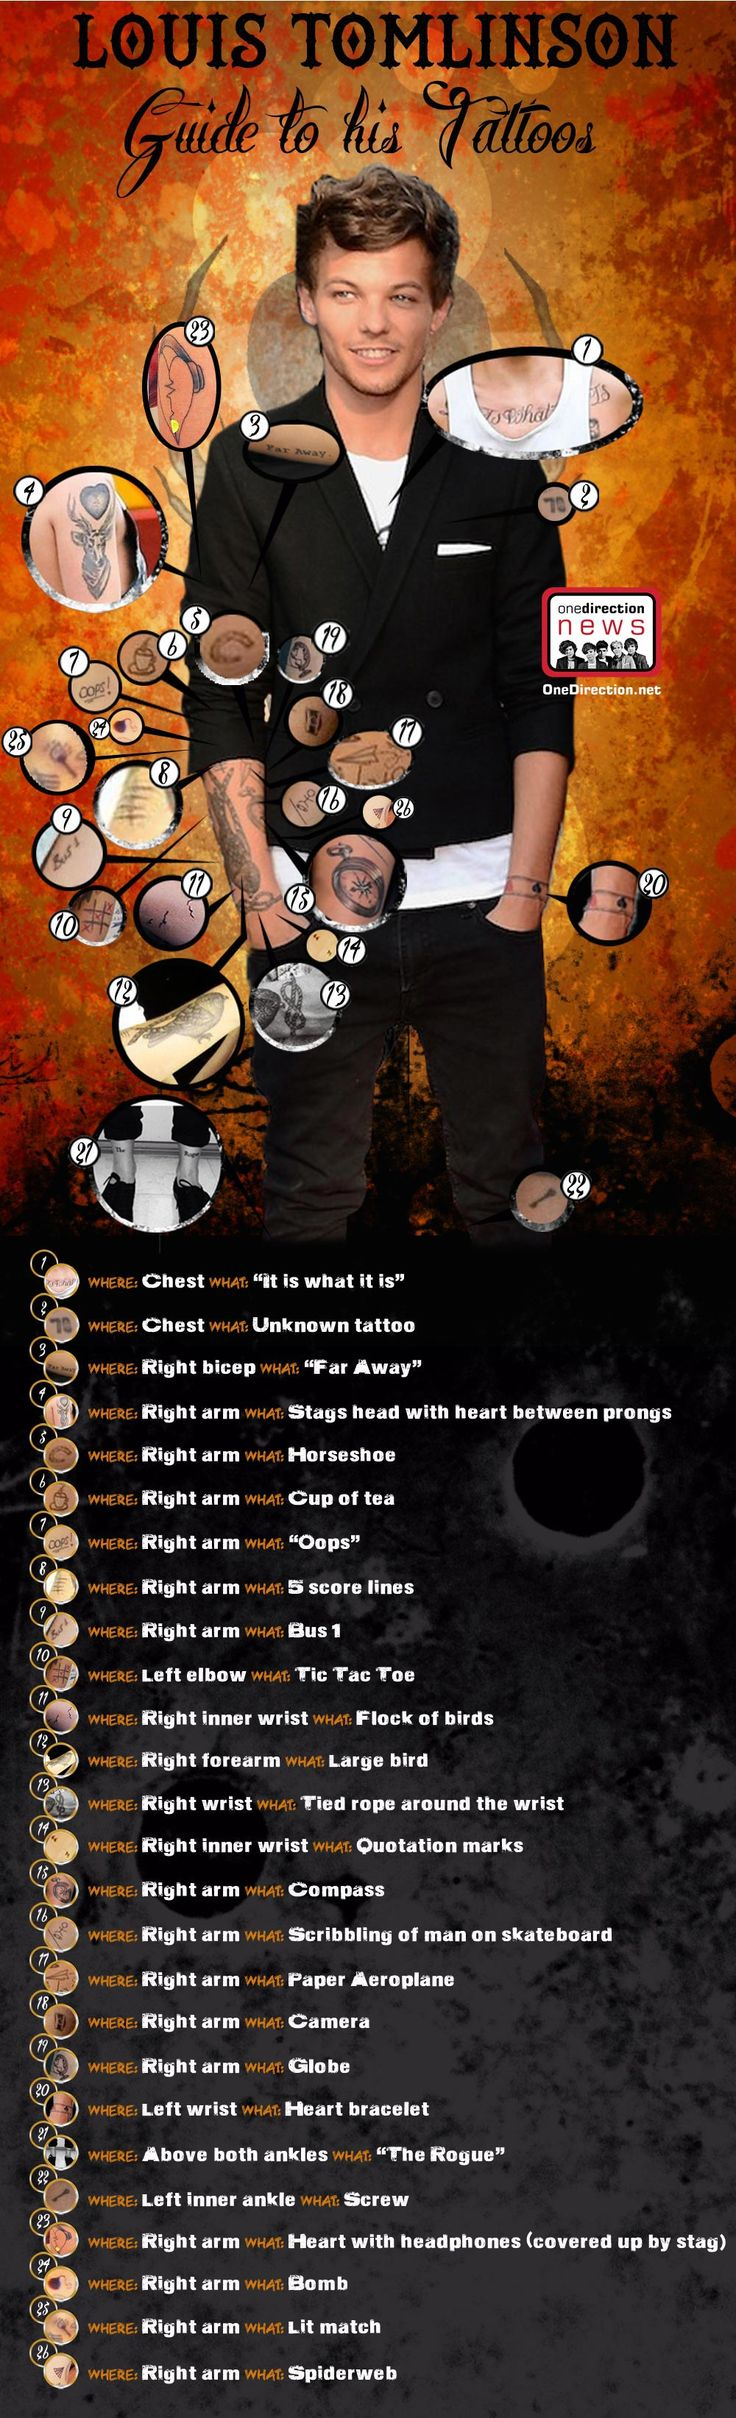 A guide to Louis' tattoos